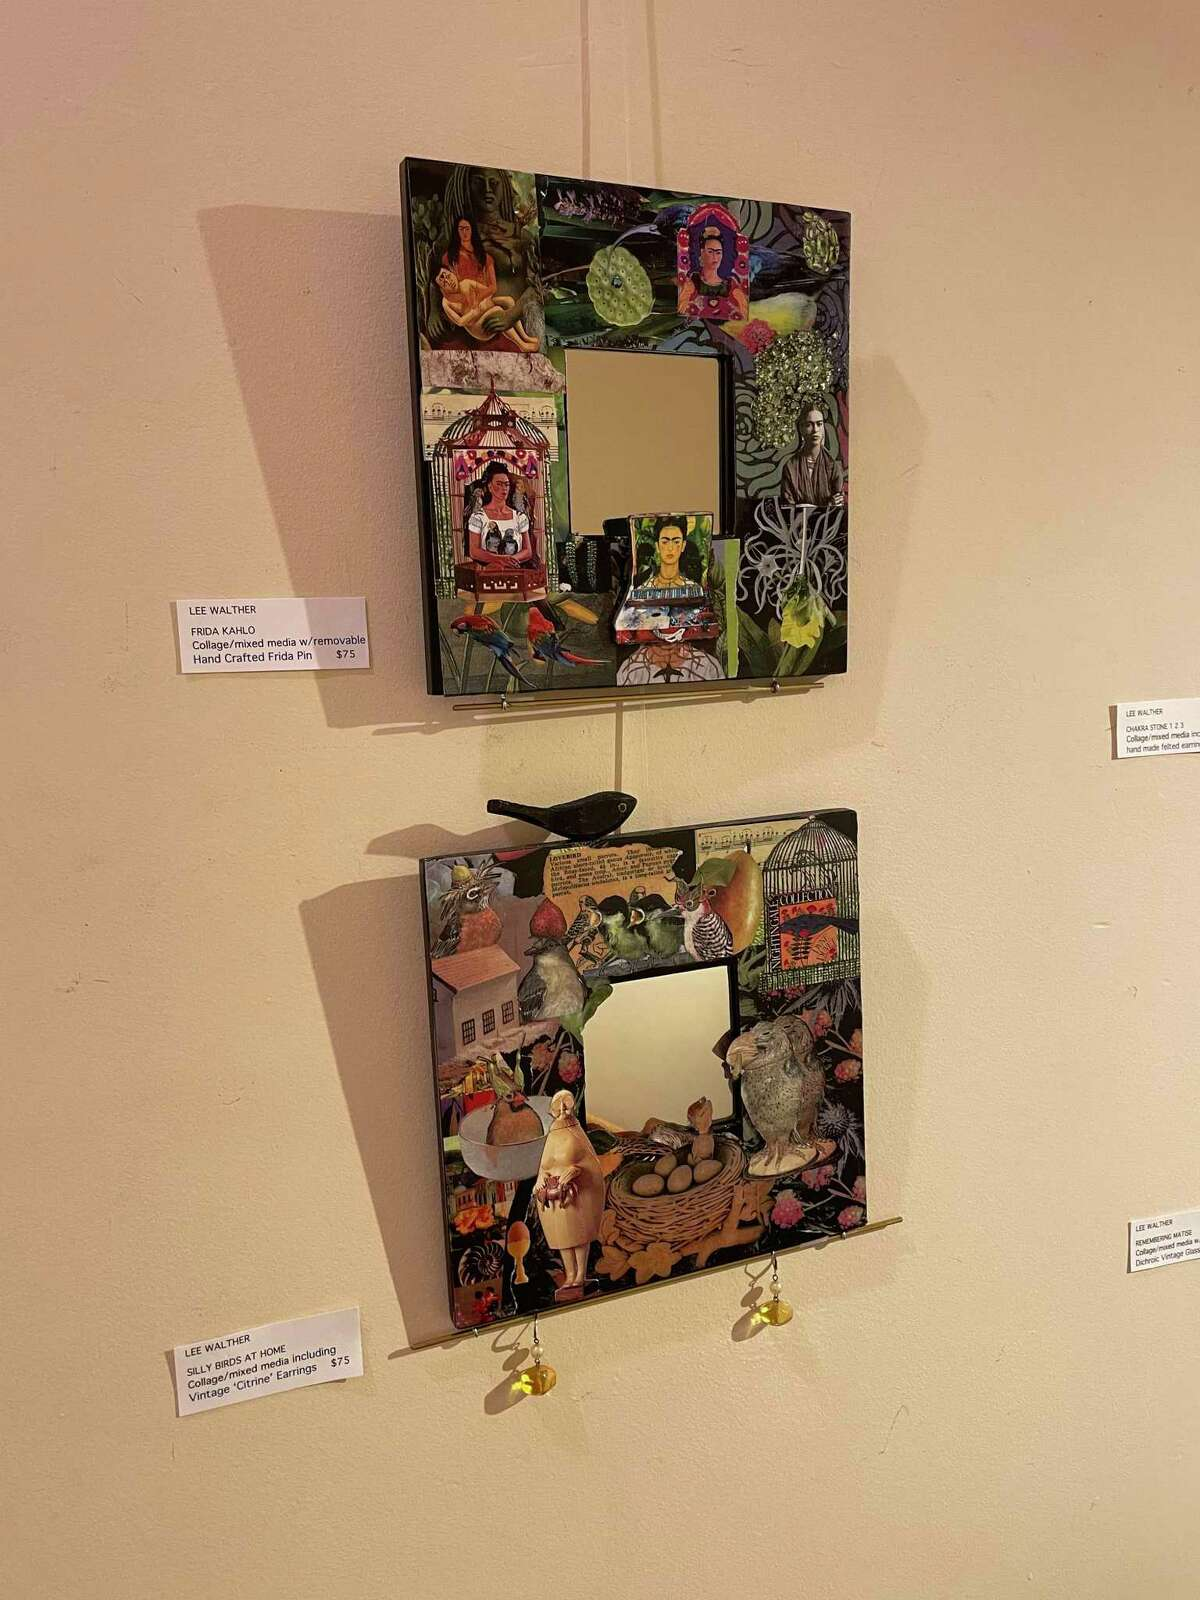 Some of Lee Walther's artwork on display in Fairfield.